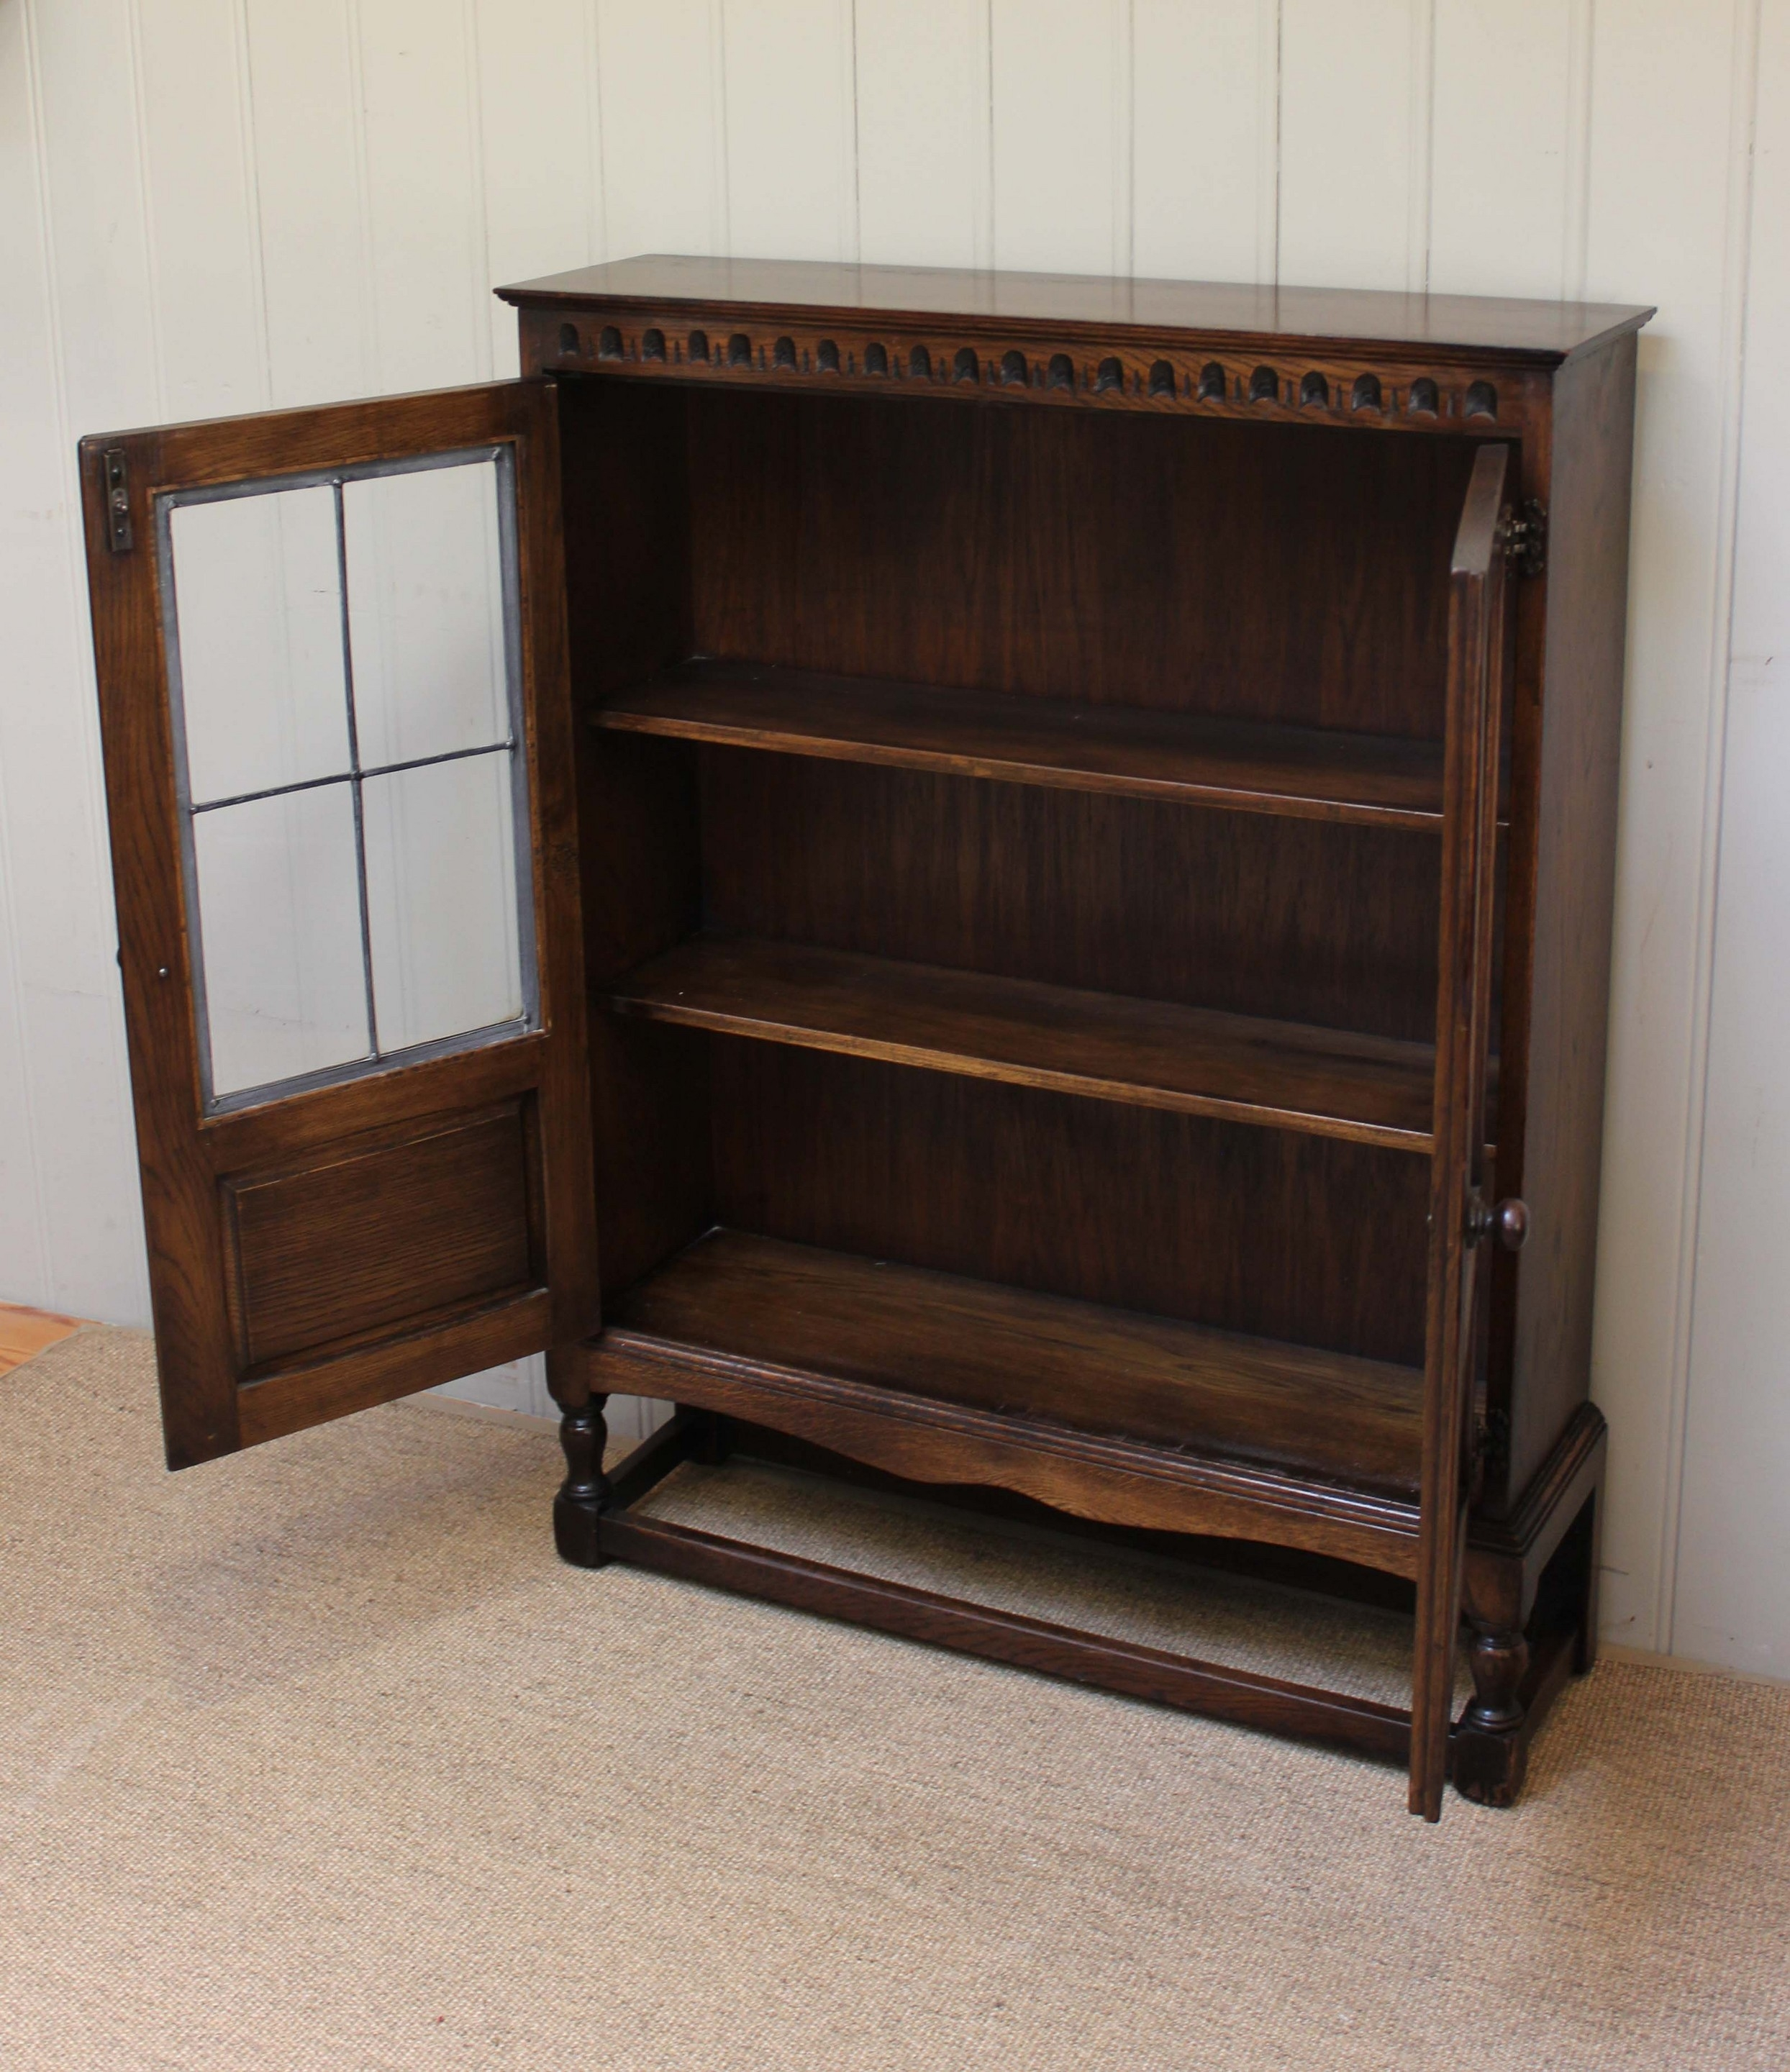 1930s Oak Glazed Bookcase C 1930 English From Worboys Antiques Pertaining To